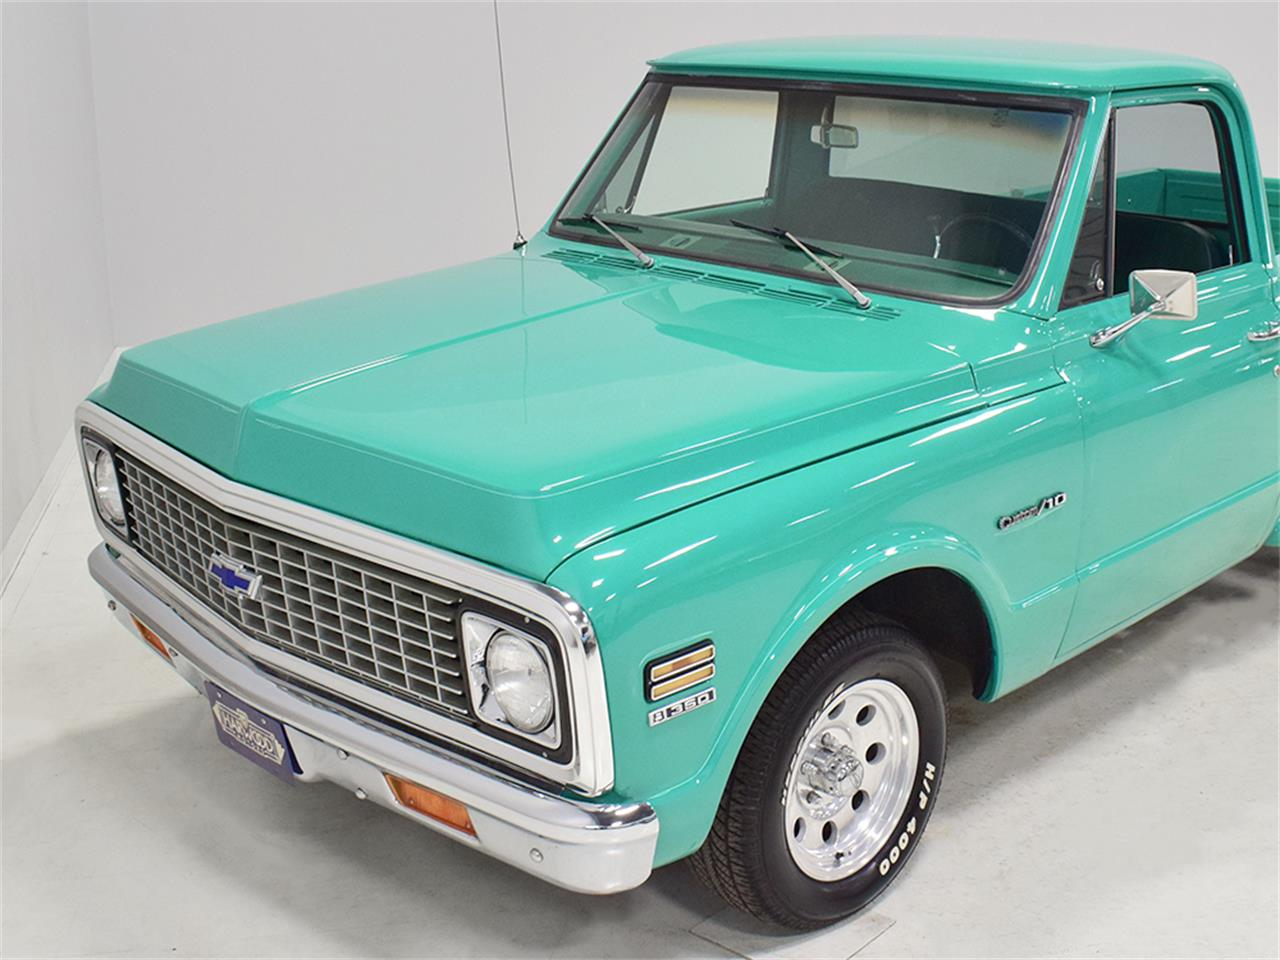 Large Picture of 1971 Chevrolet C10 located in Ohio - $29,900.00 - PNQR